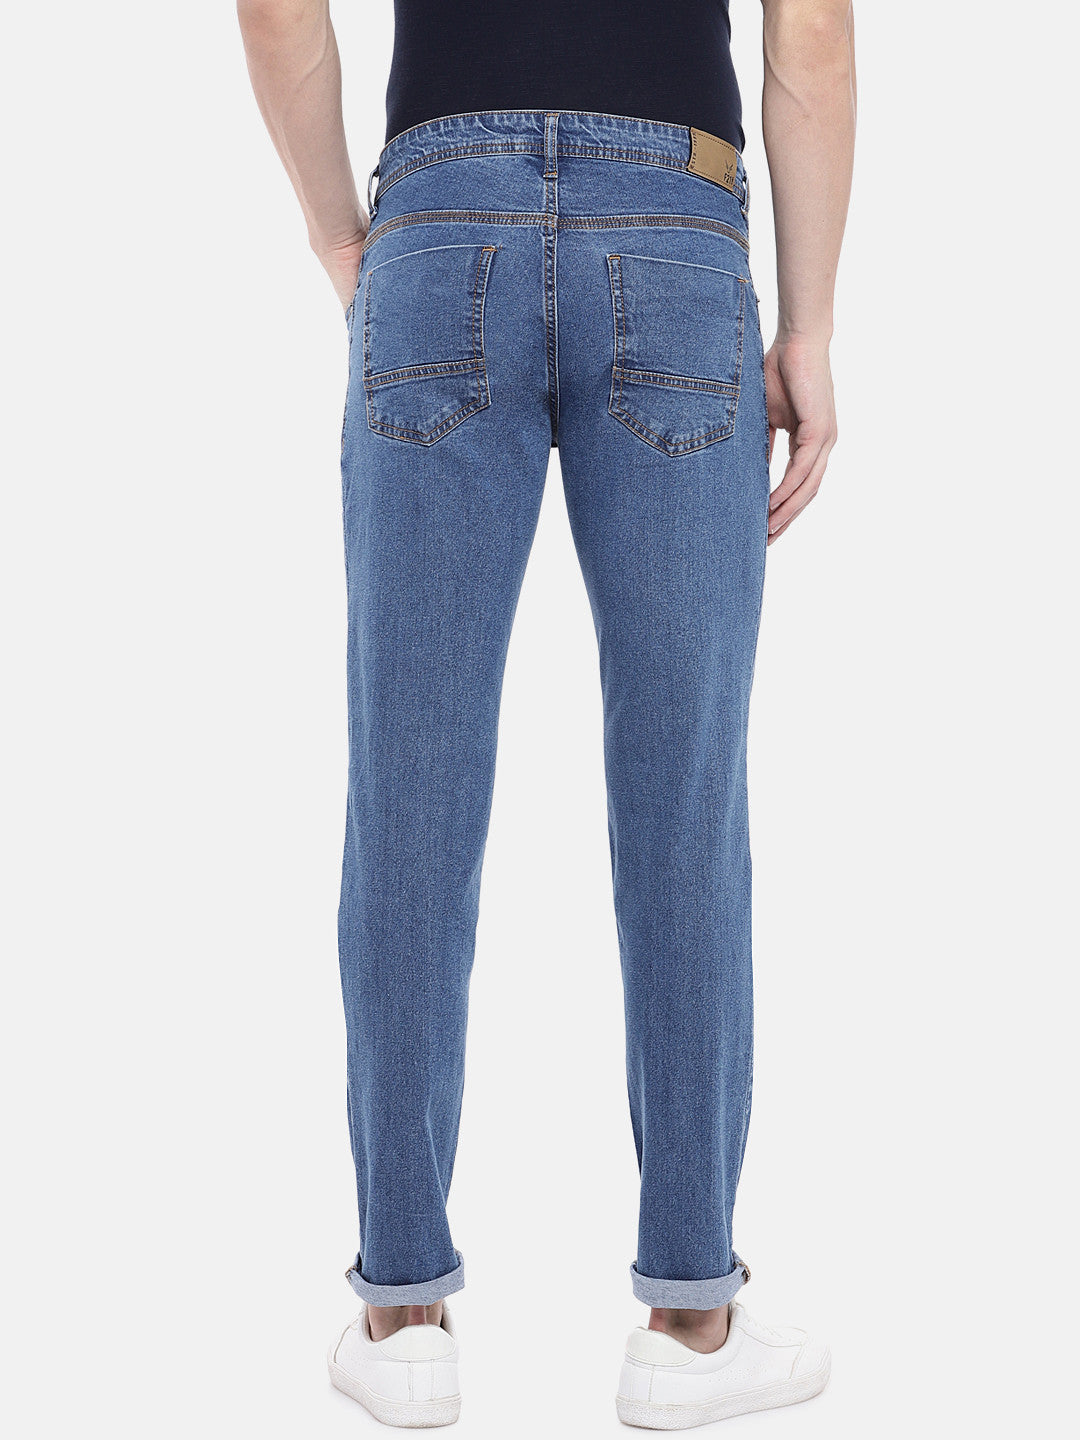 Blue Slim Fit Mid-Rise Clean Look Jeans-3